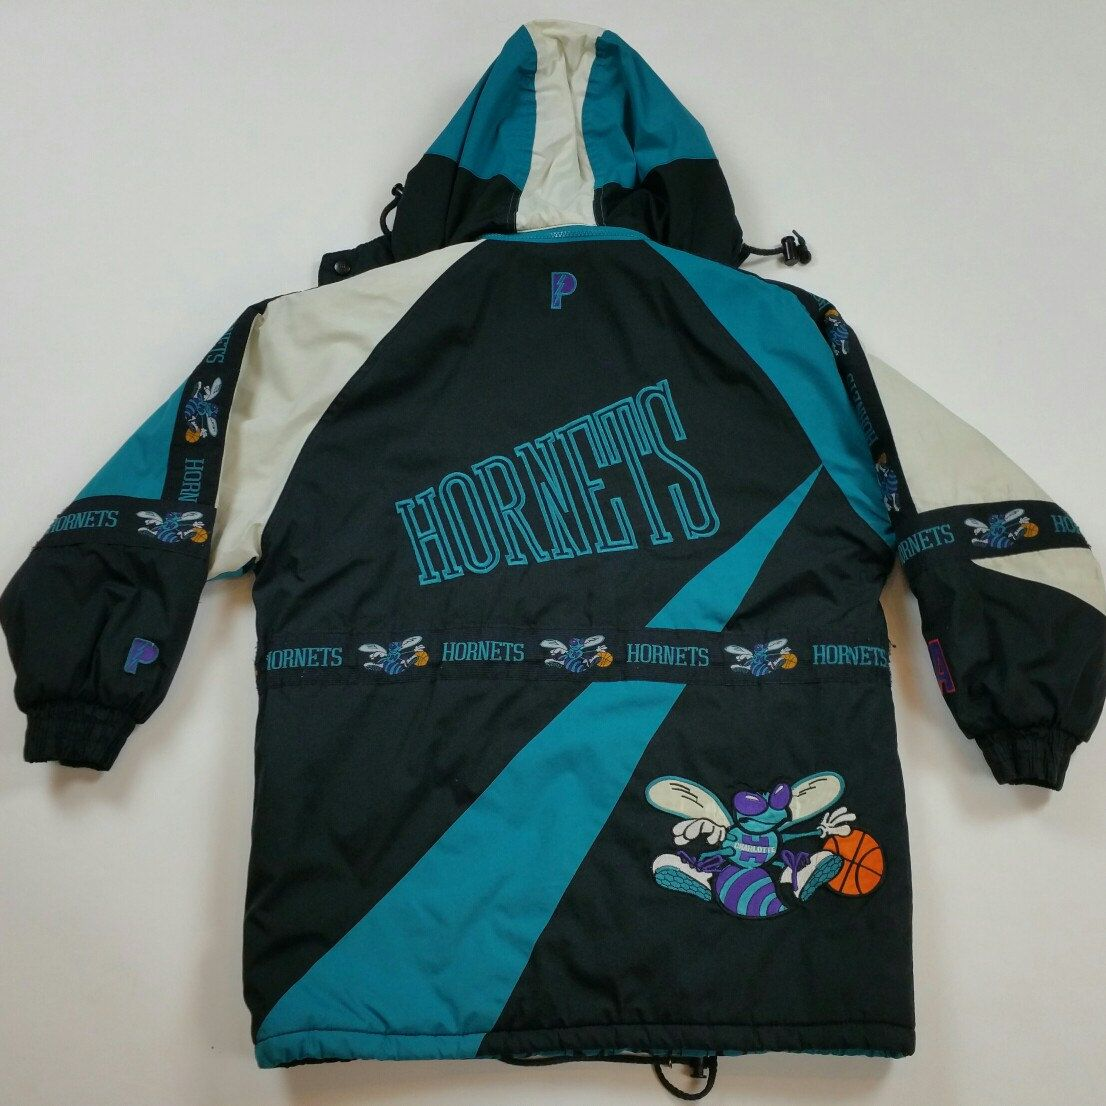 01b9fb6241a Check out this Vintage 90 s Charlotte Hornets Pro Player Jacket. Swing by  our Etsy shop and check it out. Instagram  justonevintage